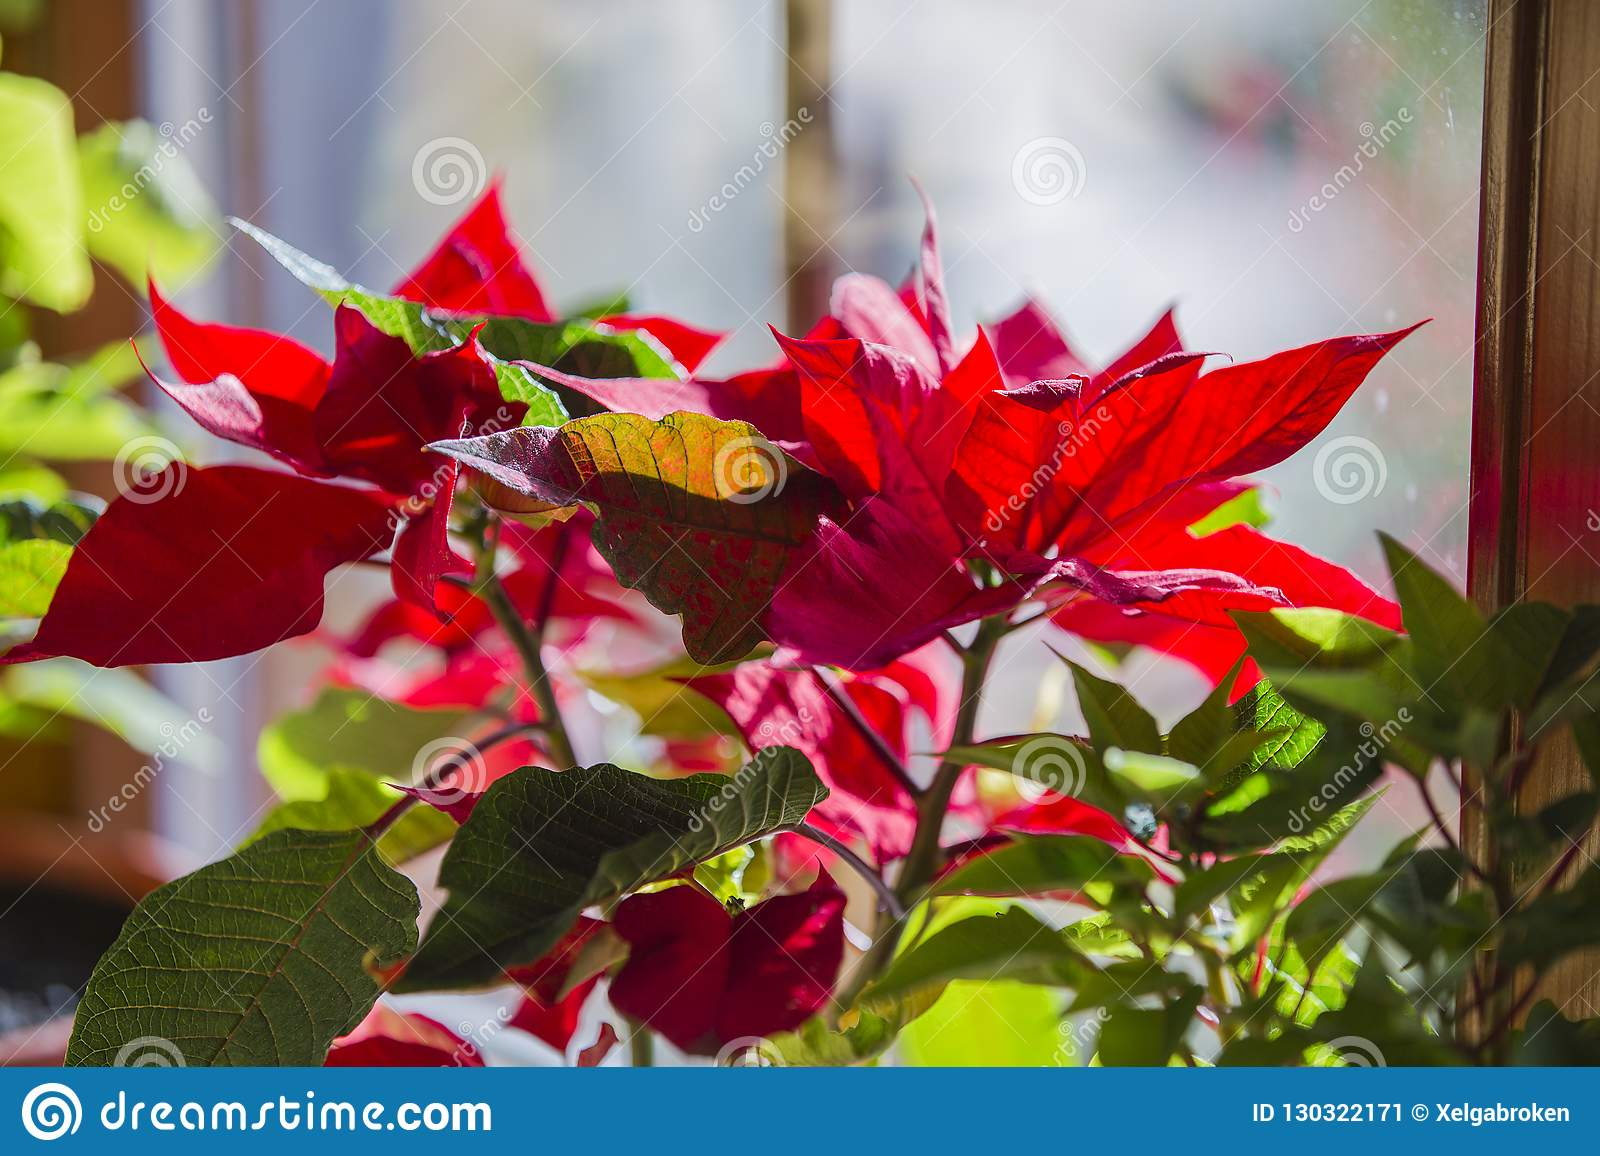 Blooming Poinsettia on window, Christmas Star beautiful red flower